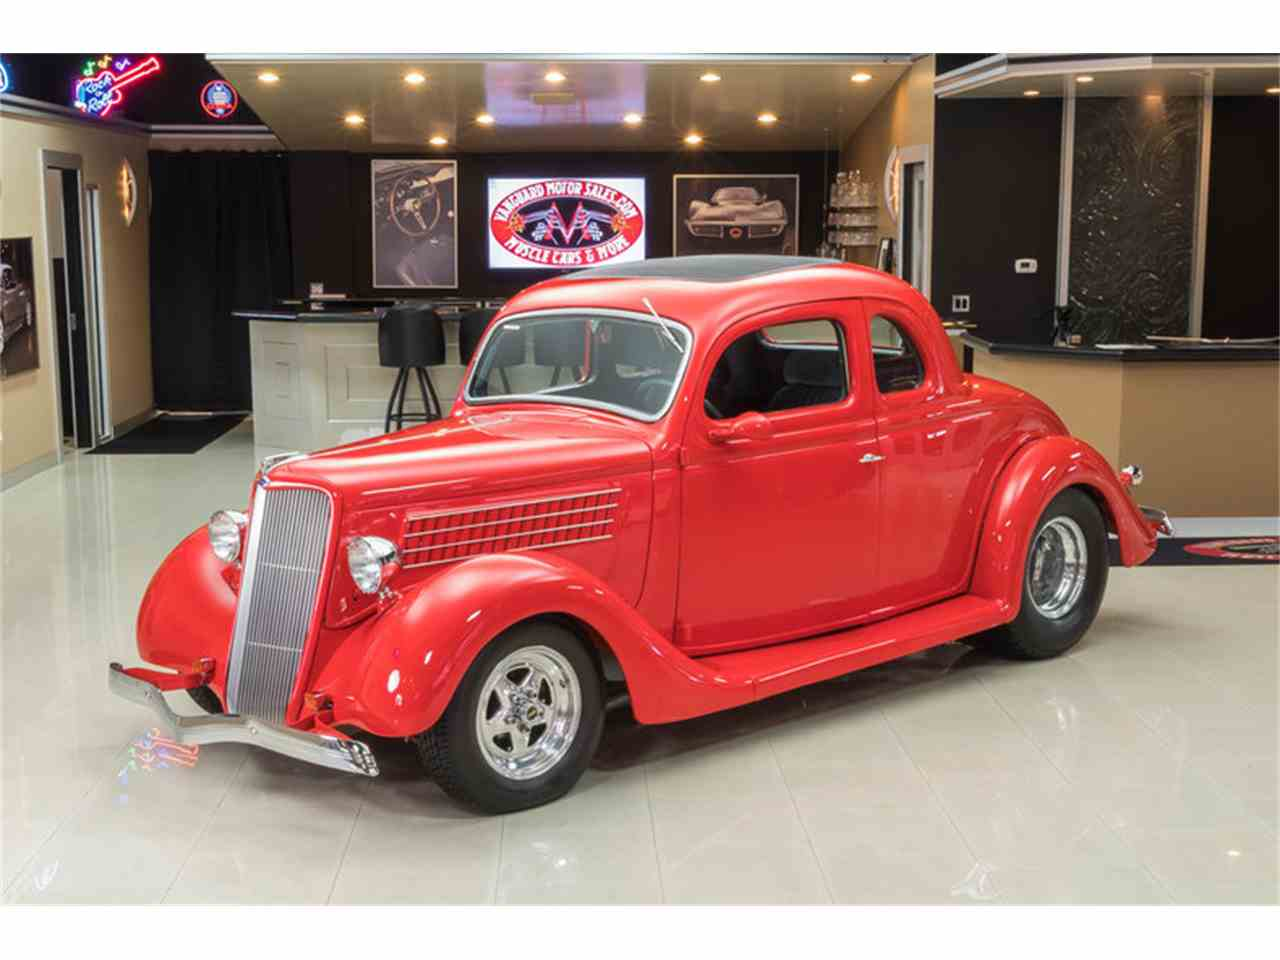 1935 ford 5 window coupe street rod for sale classiccars for 1935 ford 5 window coupe for sale